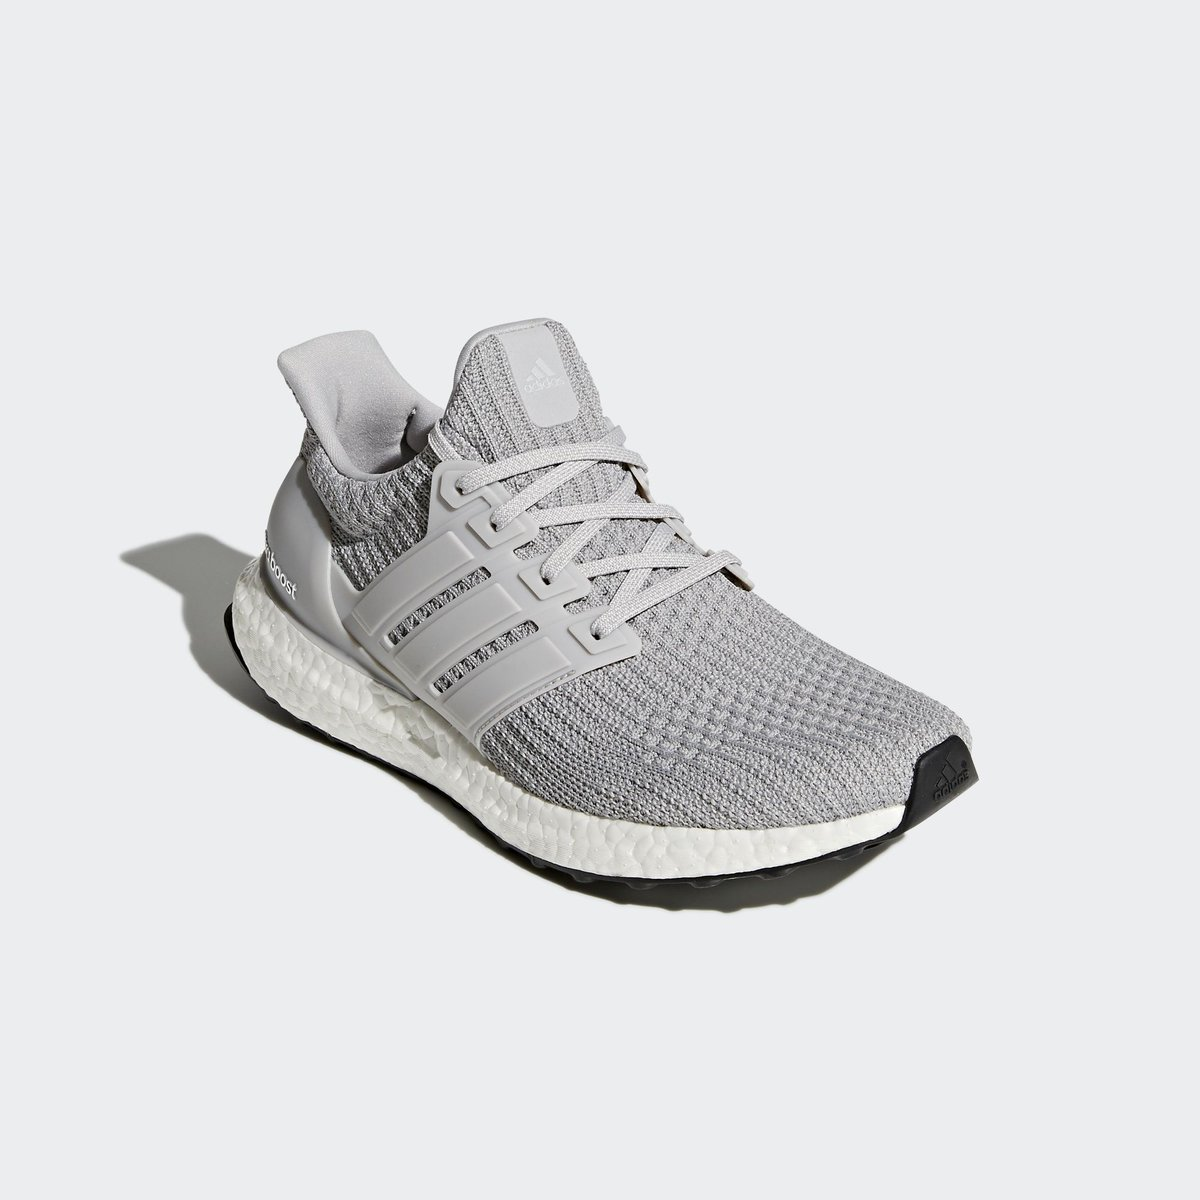 5a89b55b336c2 Sizes selling out on  adidas US. adidas Ultra Boost 4.0 Grey Two. Retail   180. Now  126 shipped. —  http   bit.ly 2Hmrv5J pic.twitter.com 4W93mPphj4